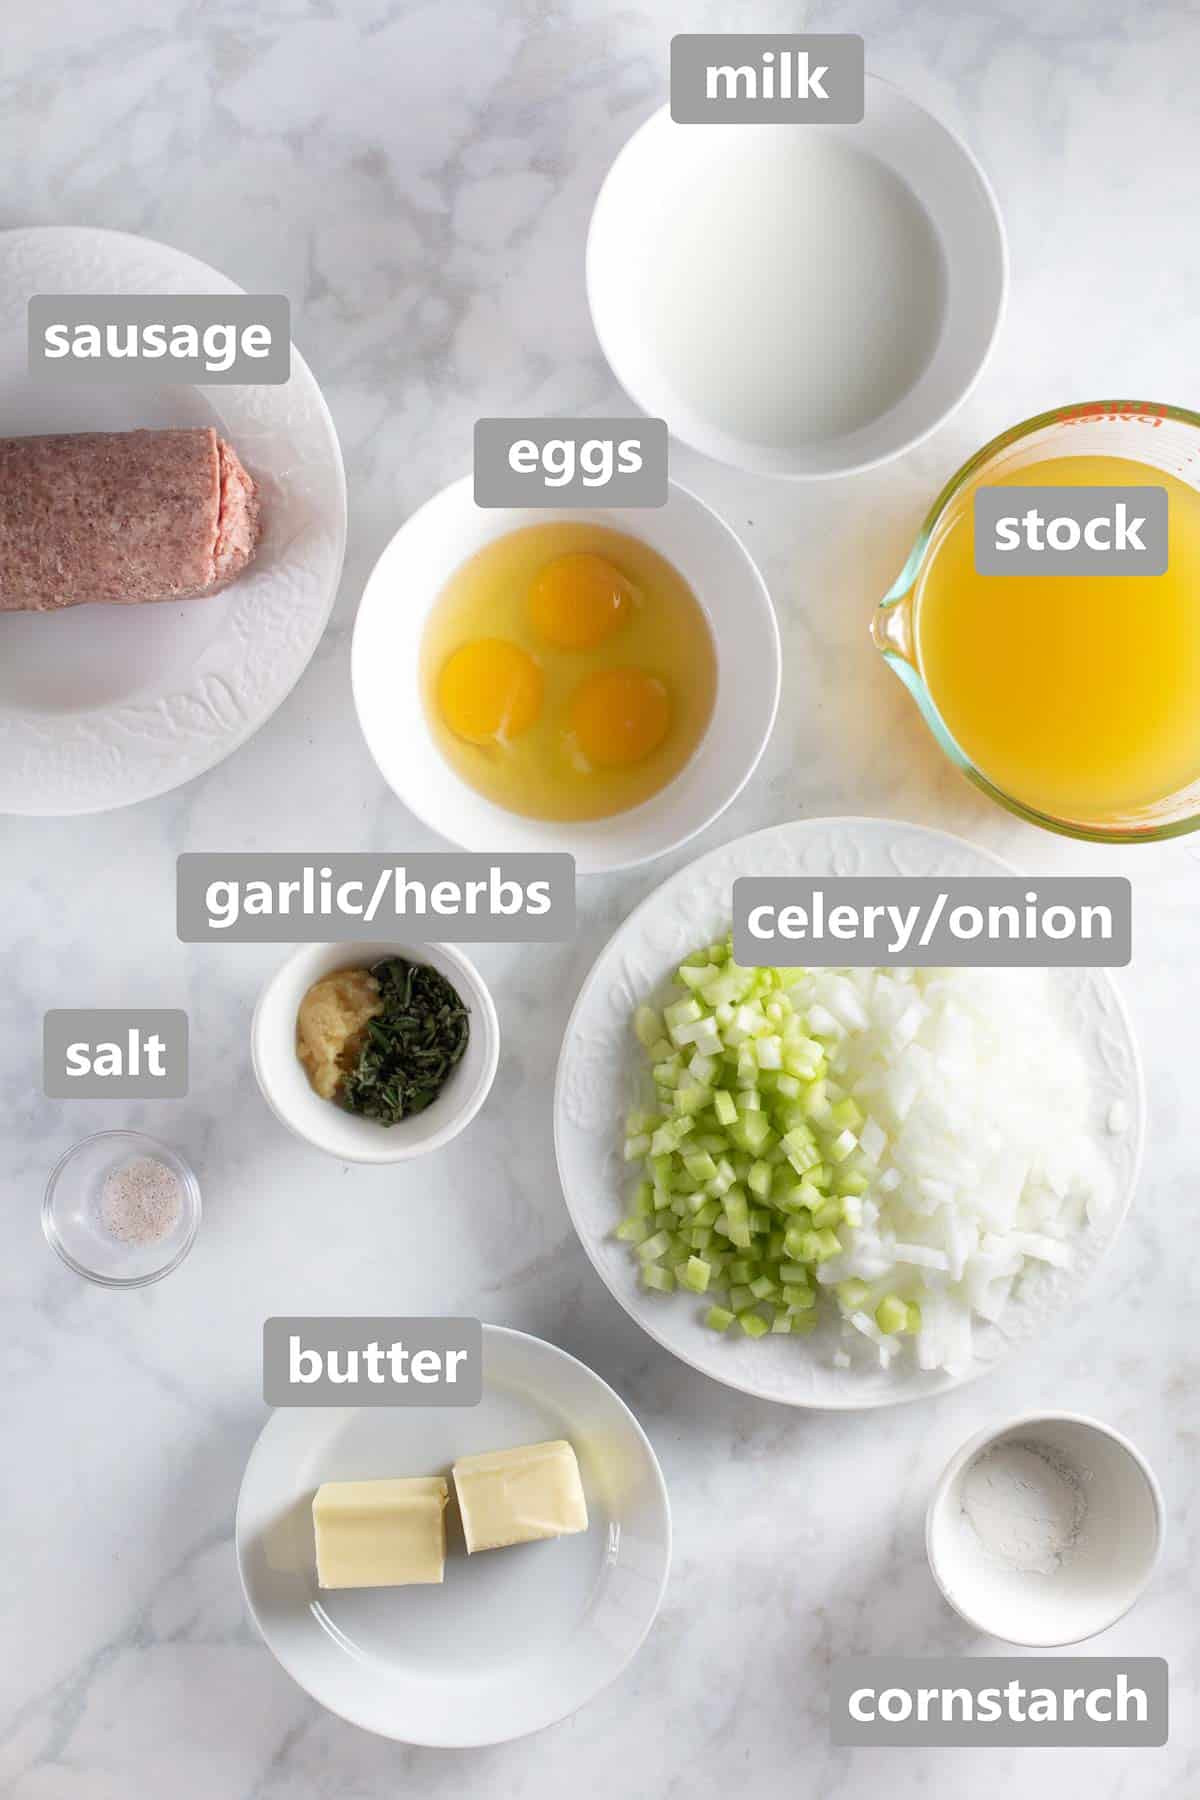 ingredients to make the sausage stuffing set out on marble background